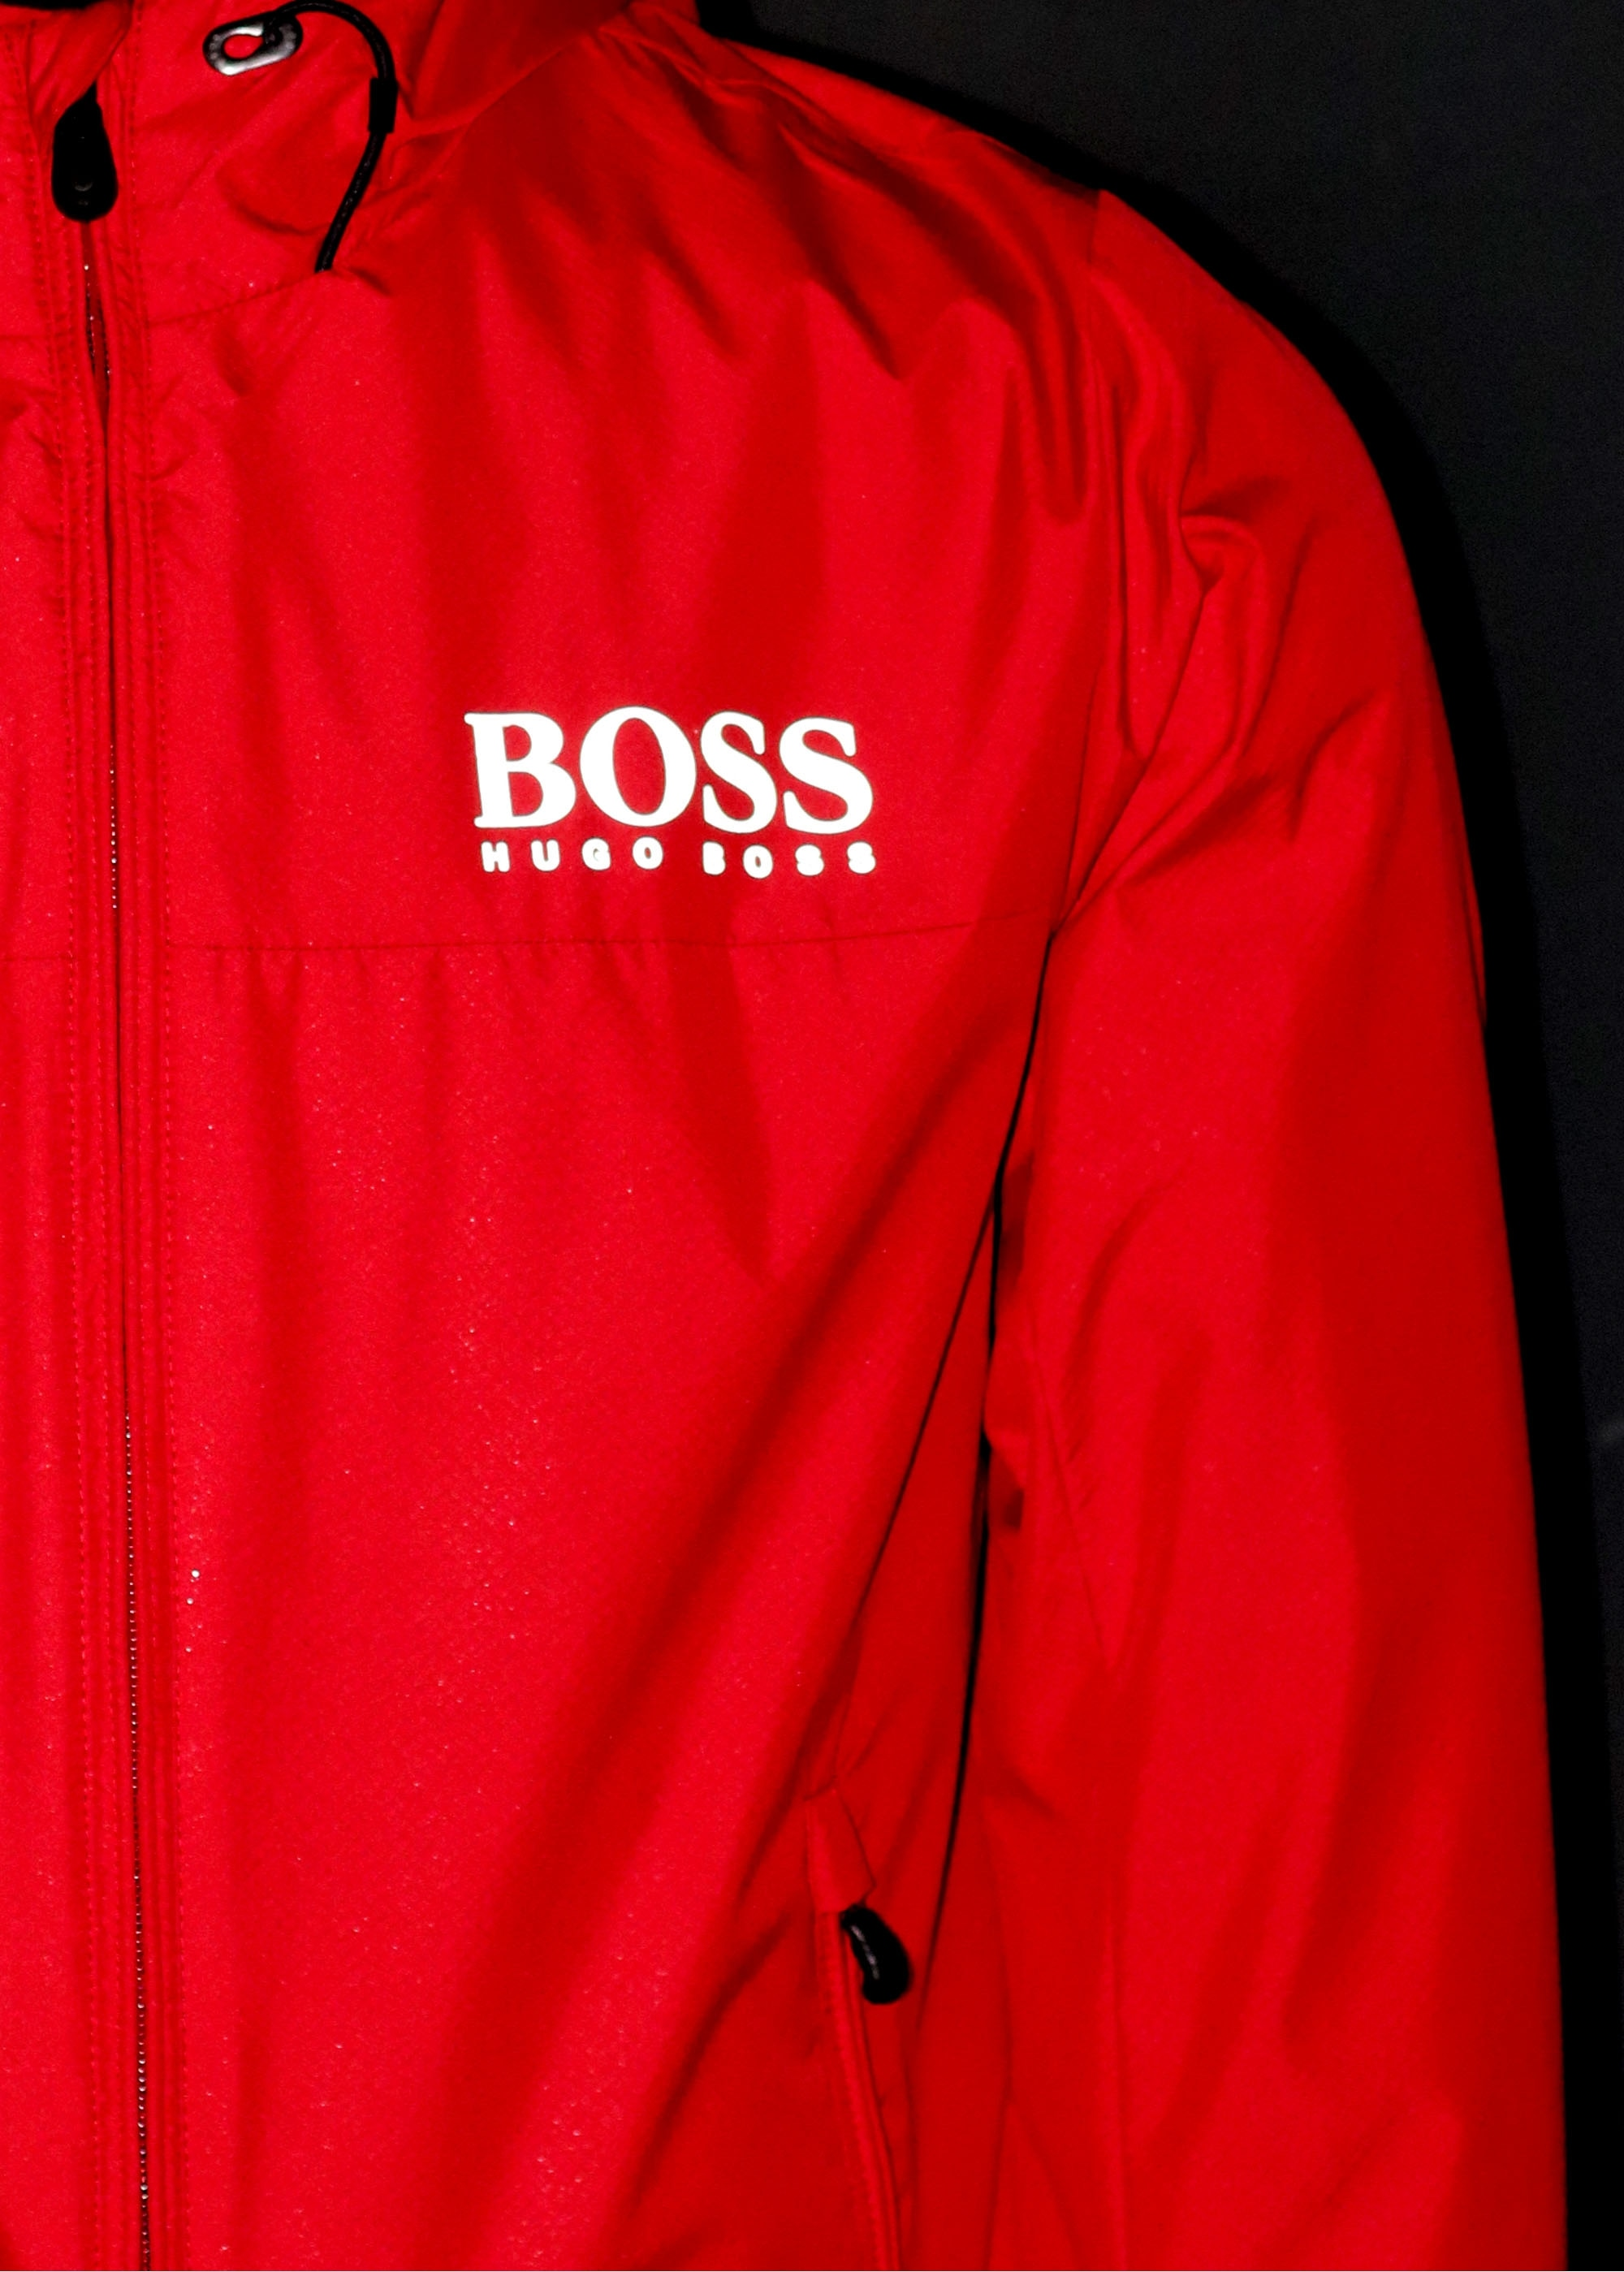 2390c166bac6 BOSS Jeltech Jacket - Medium Red - Jackets from Triads UK